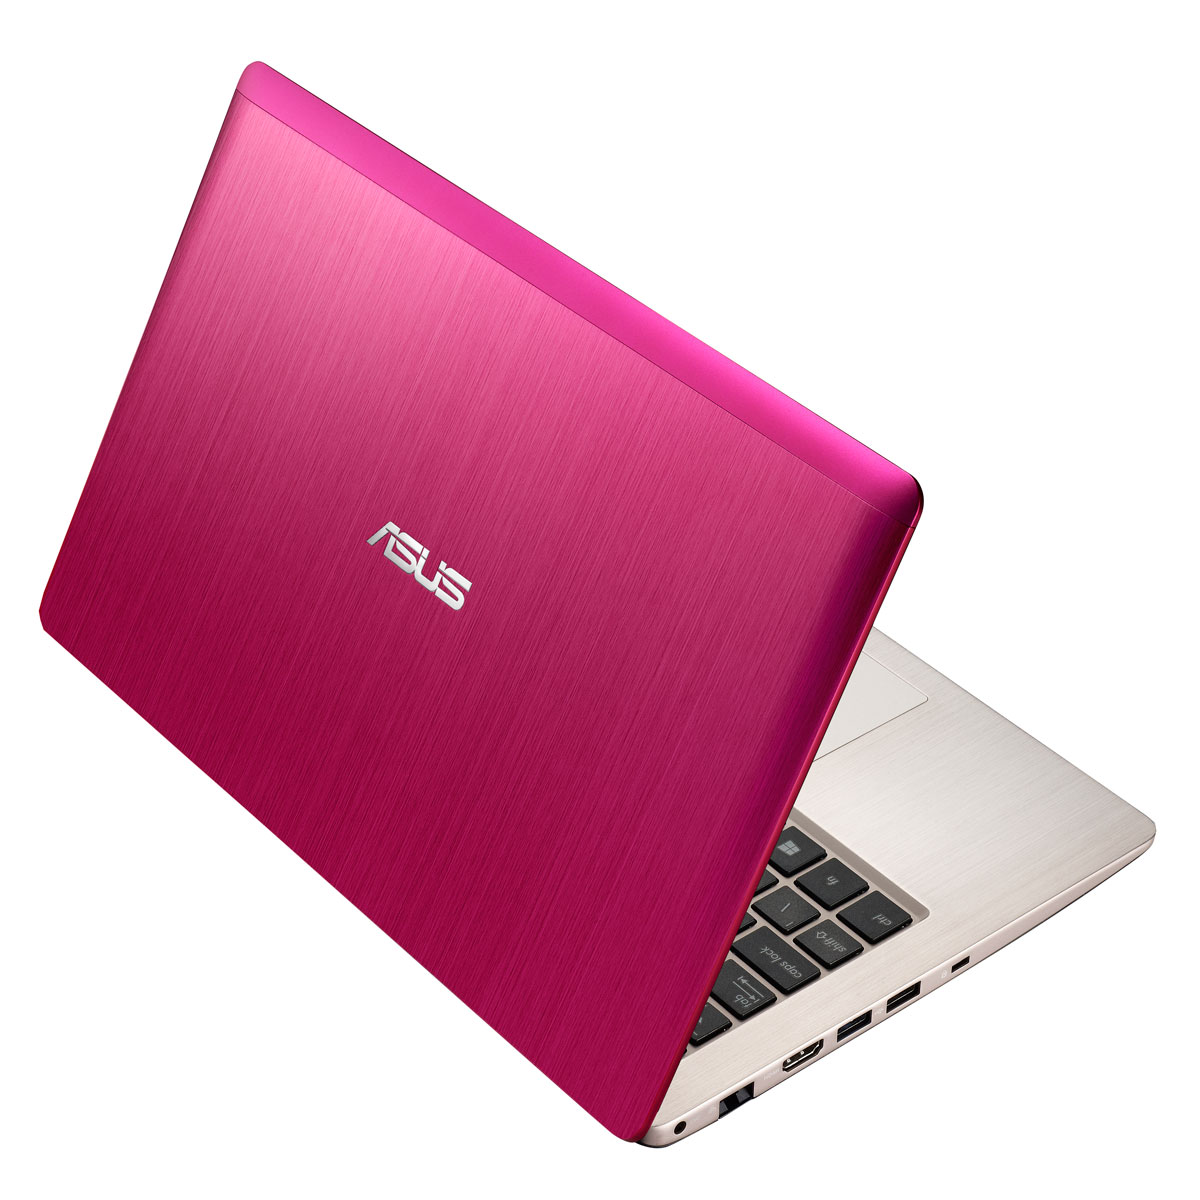 asus vivobook s200e ct177h rose pc portable asus sur ldlc. Black Bedroom Furniture Sets. Home Design Ideas